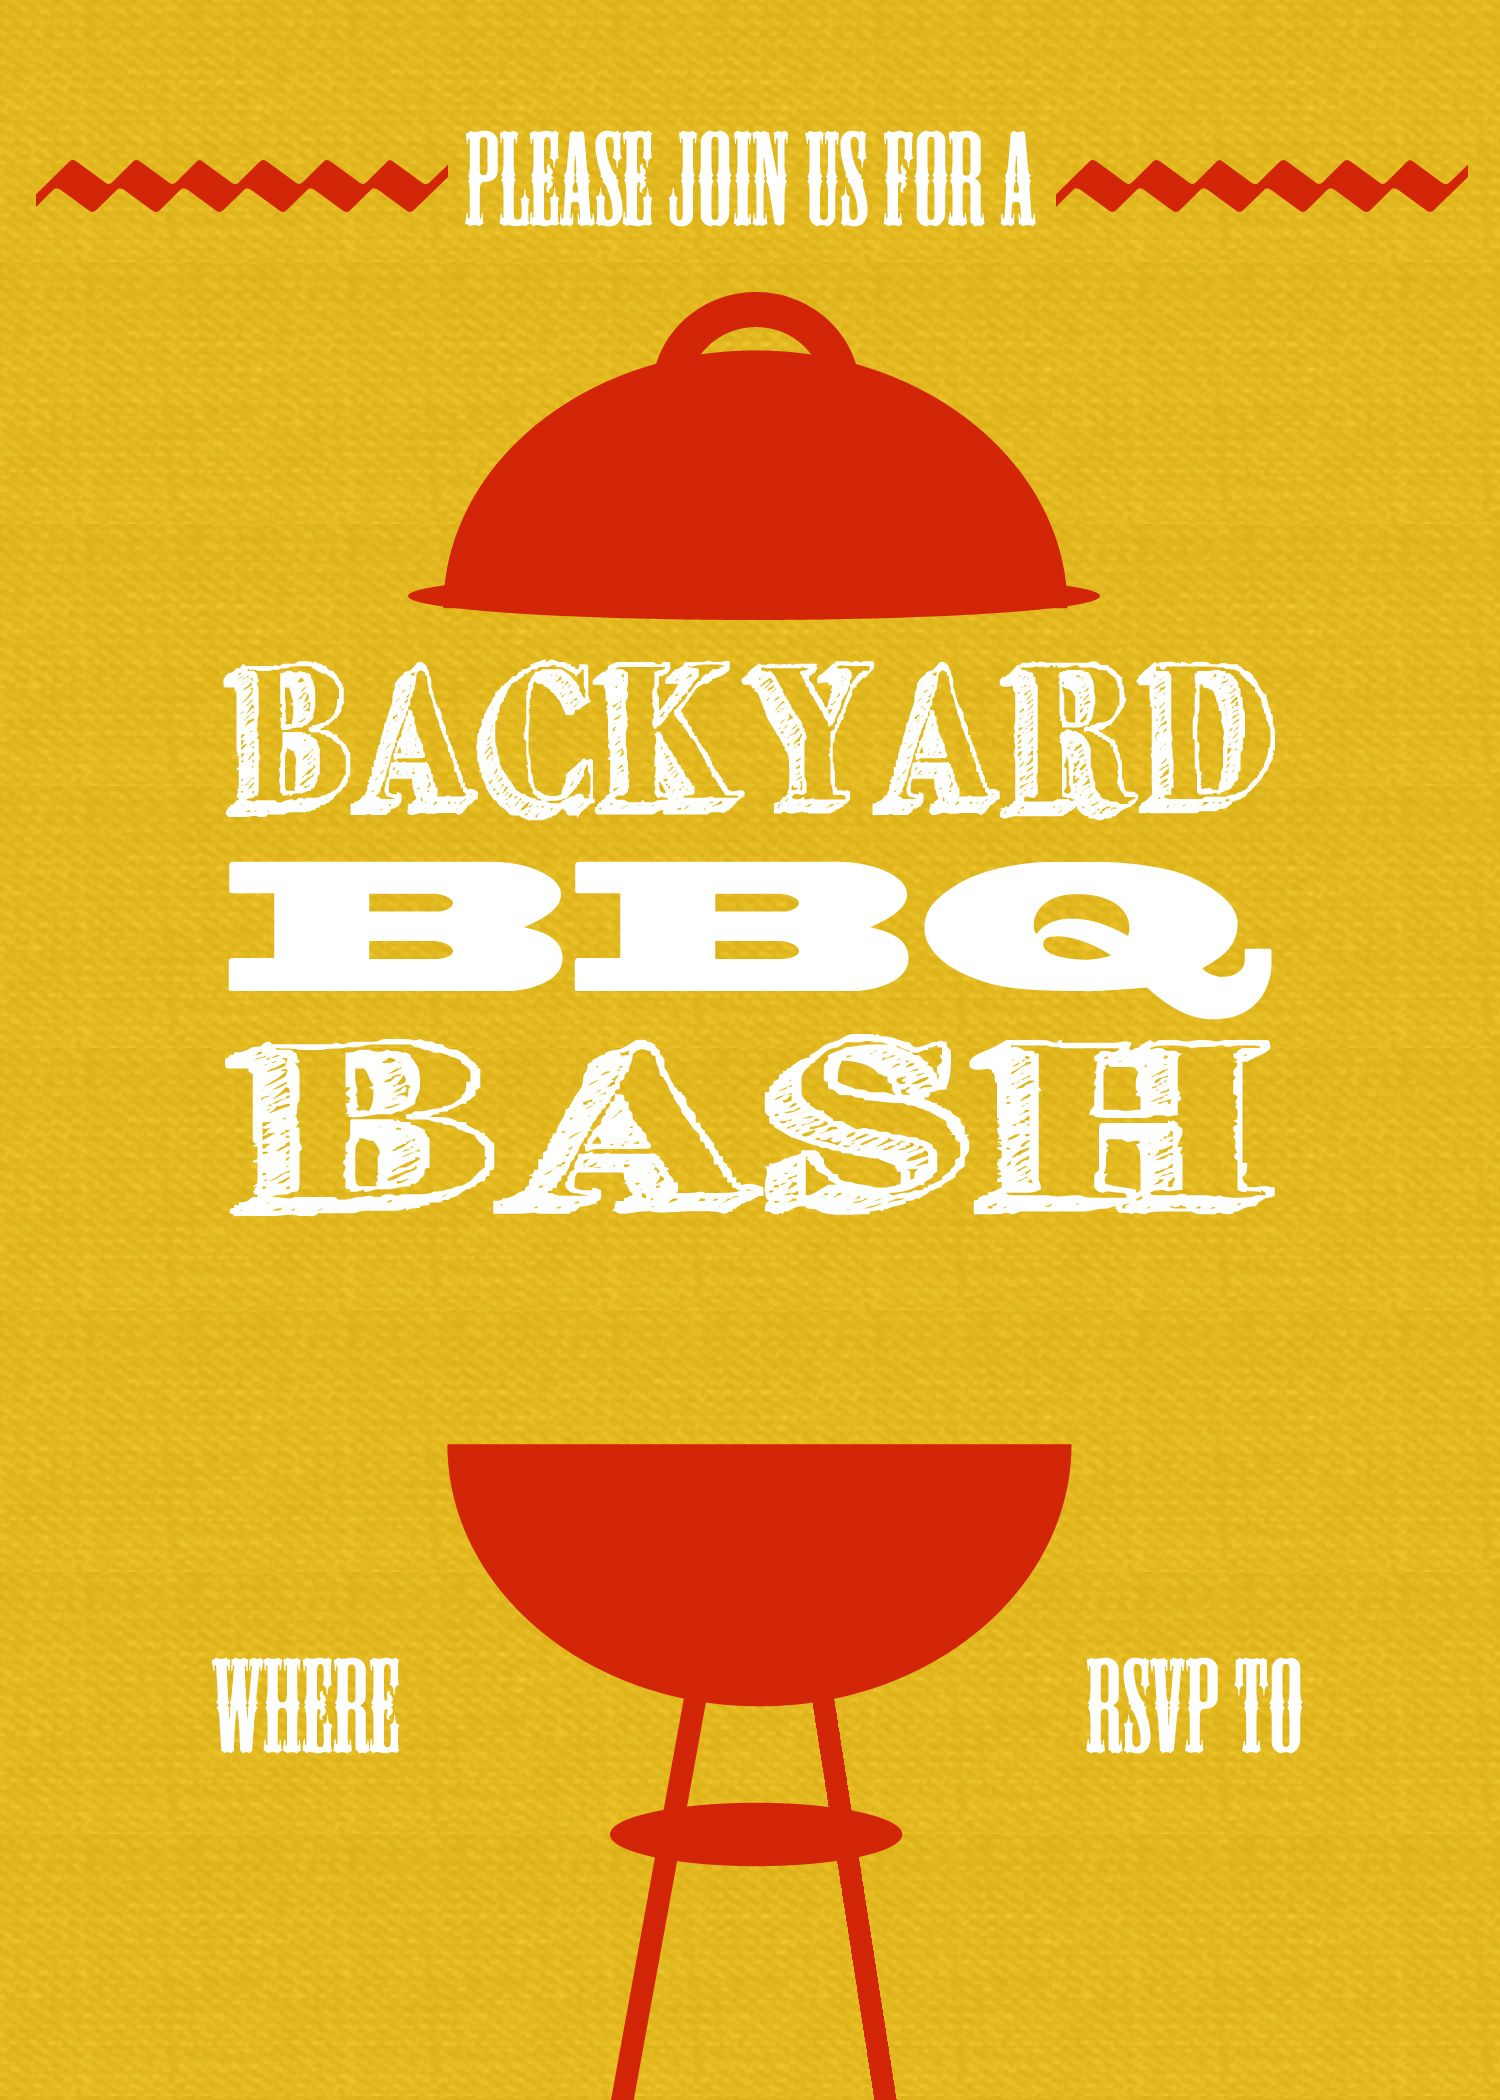 bbq invite template | Projects to Try | Pinterest | 10th birthday ...